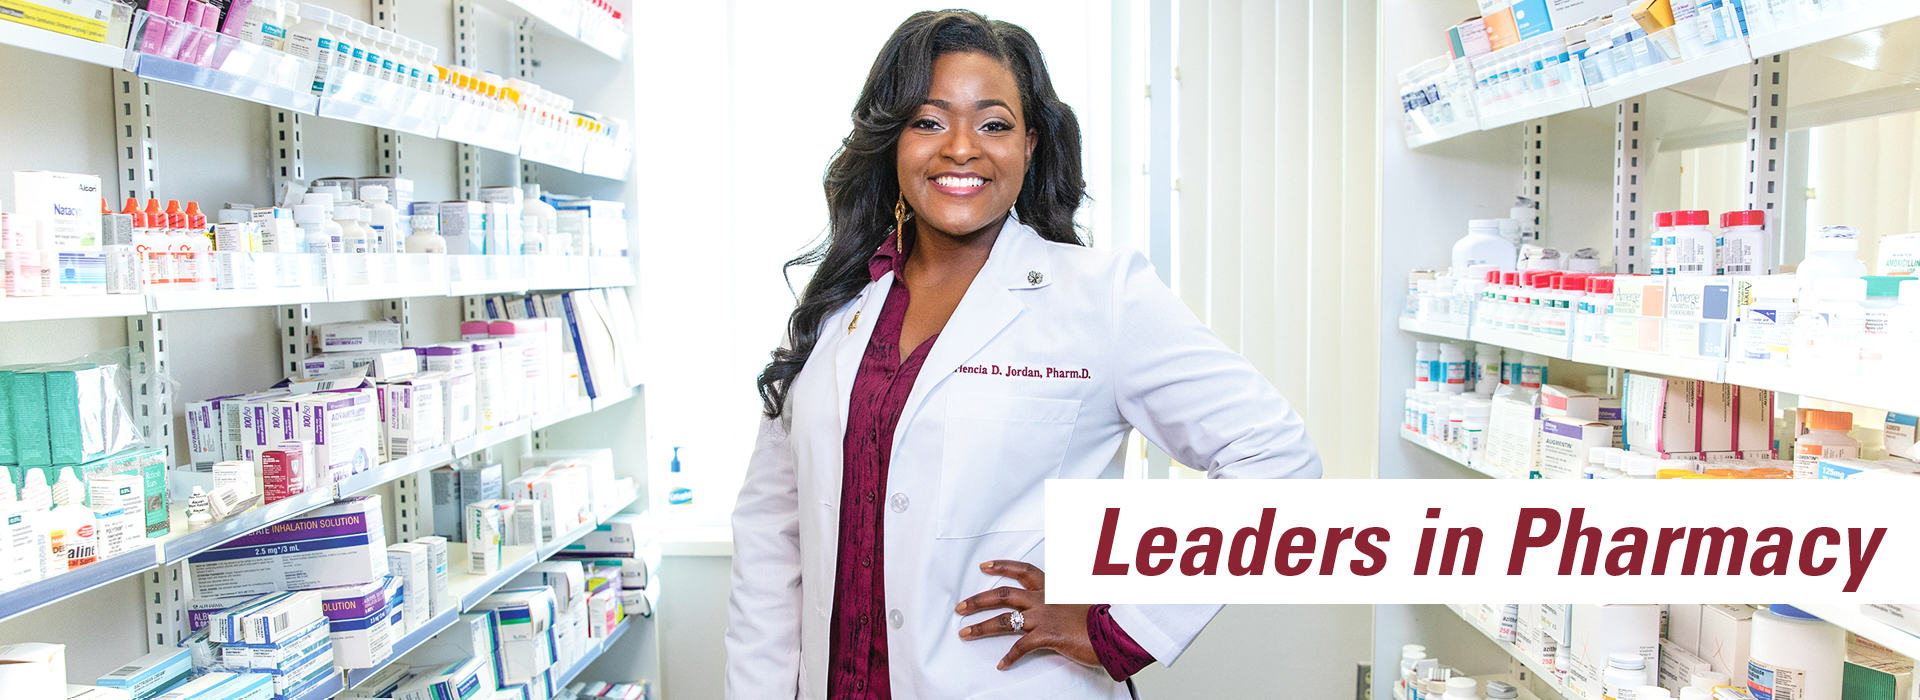 Leaders in Pharmacy banner ad